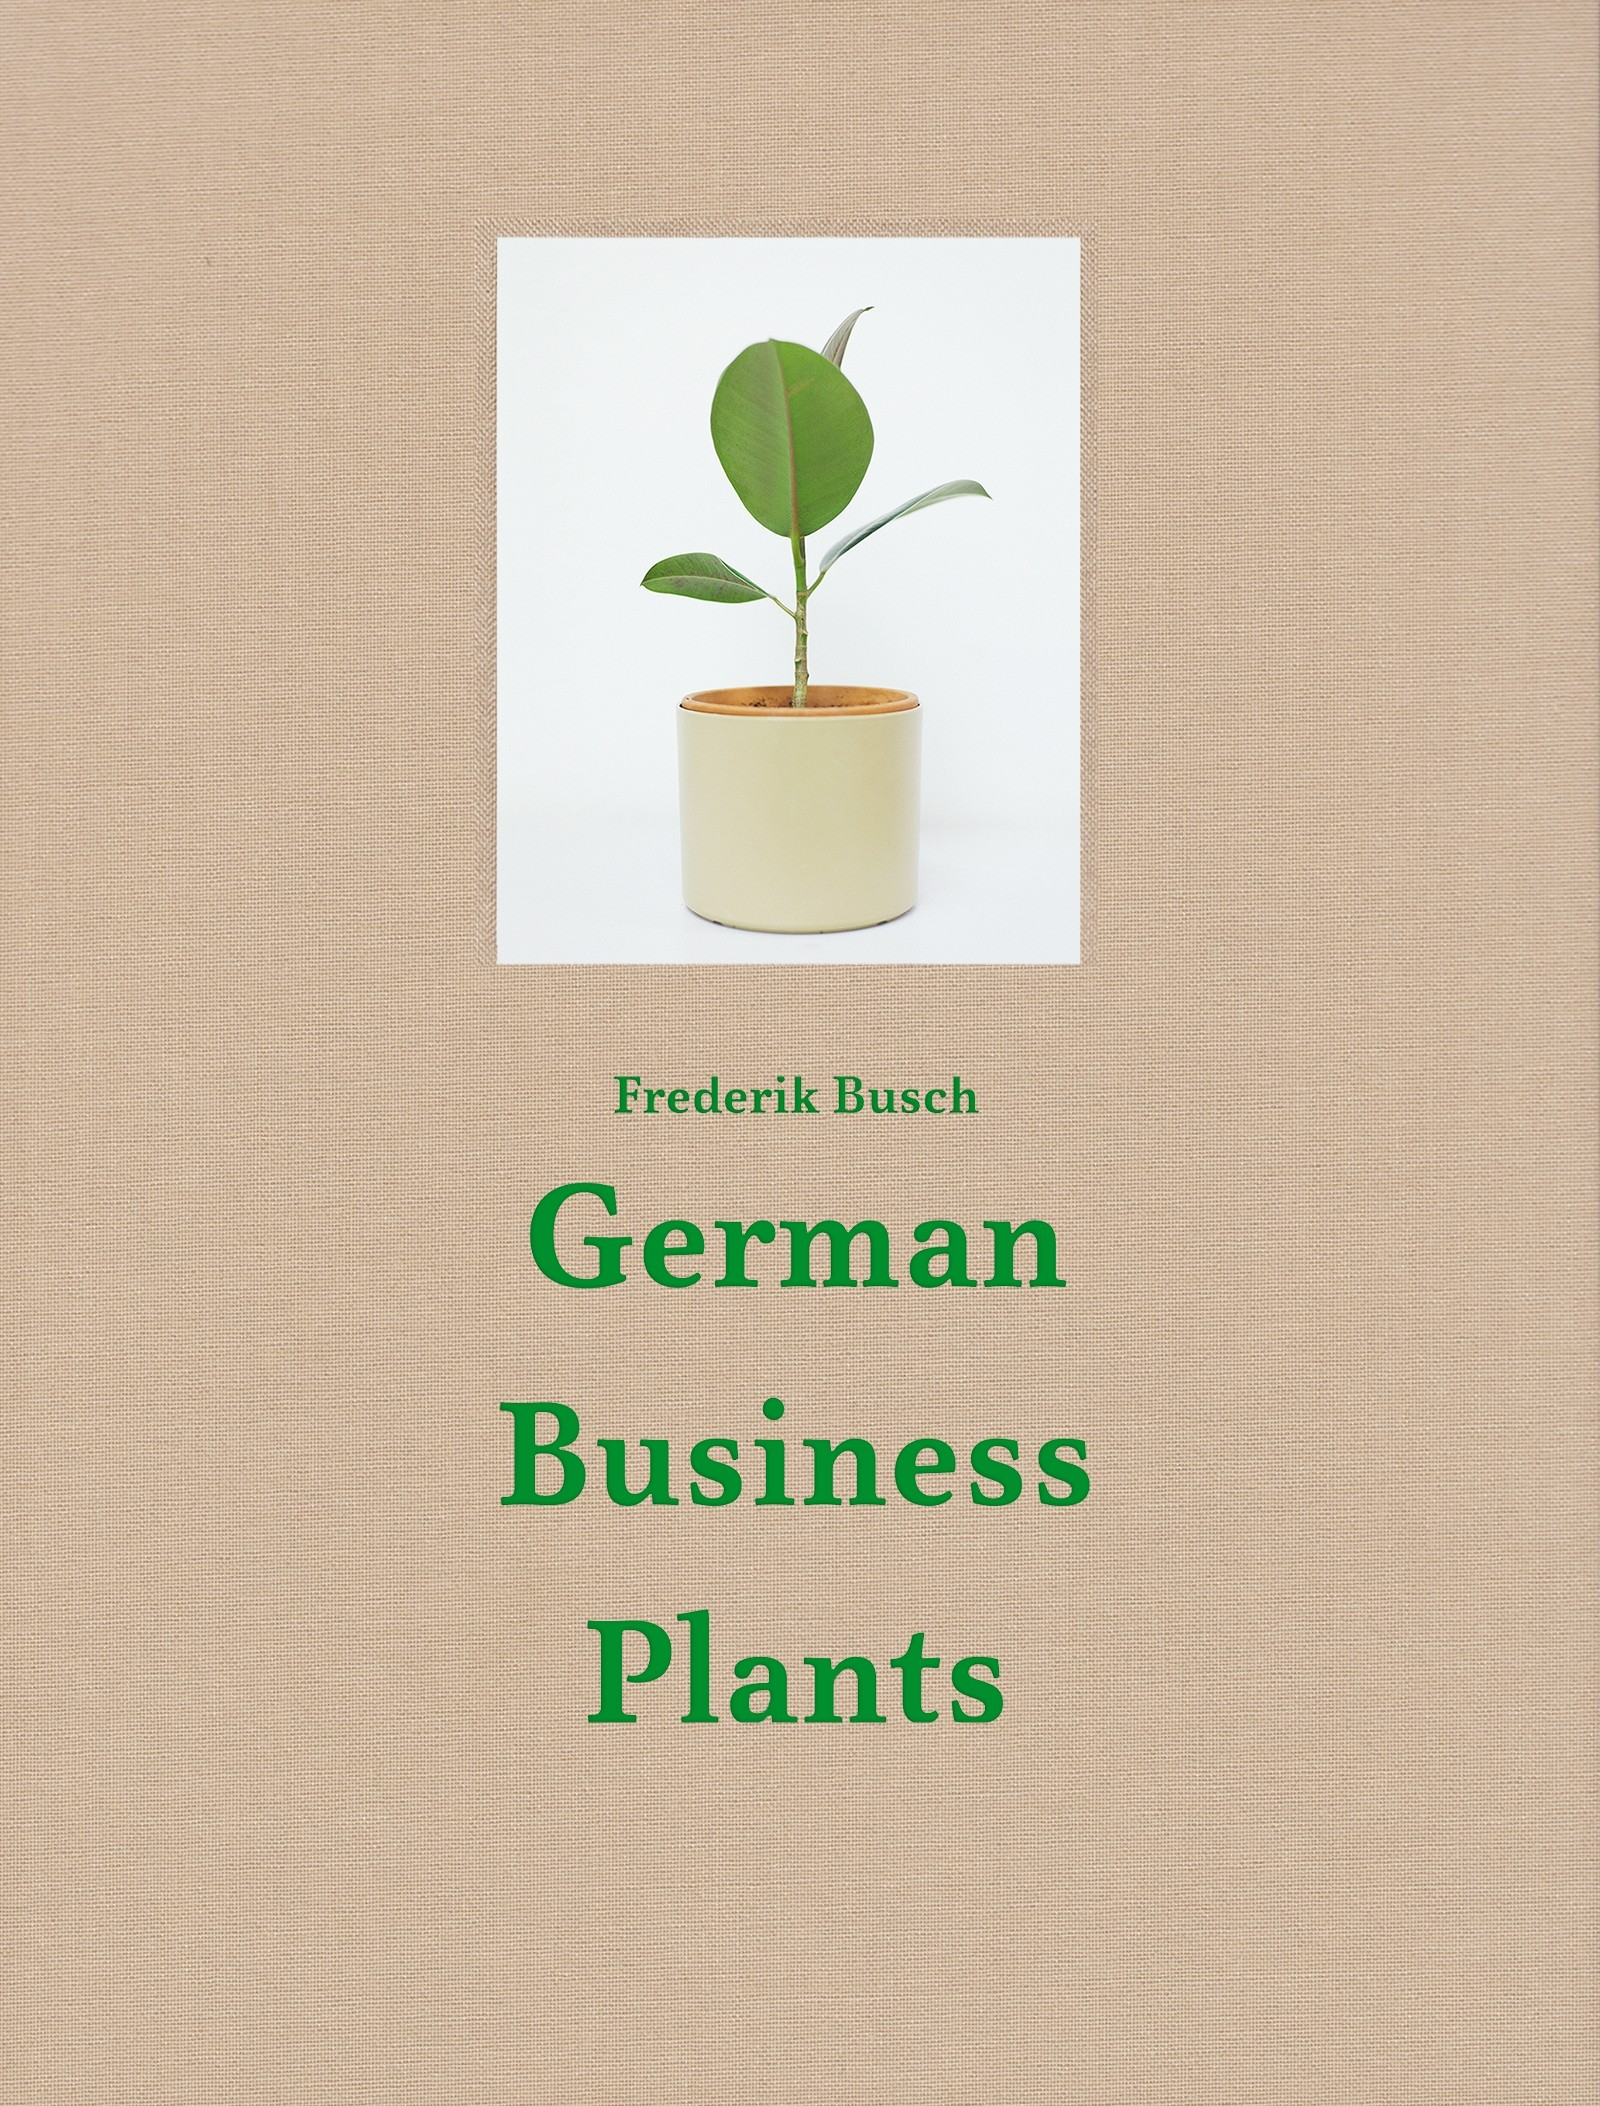 Frederik Busch German Business Plants